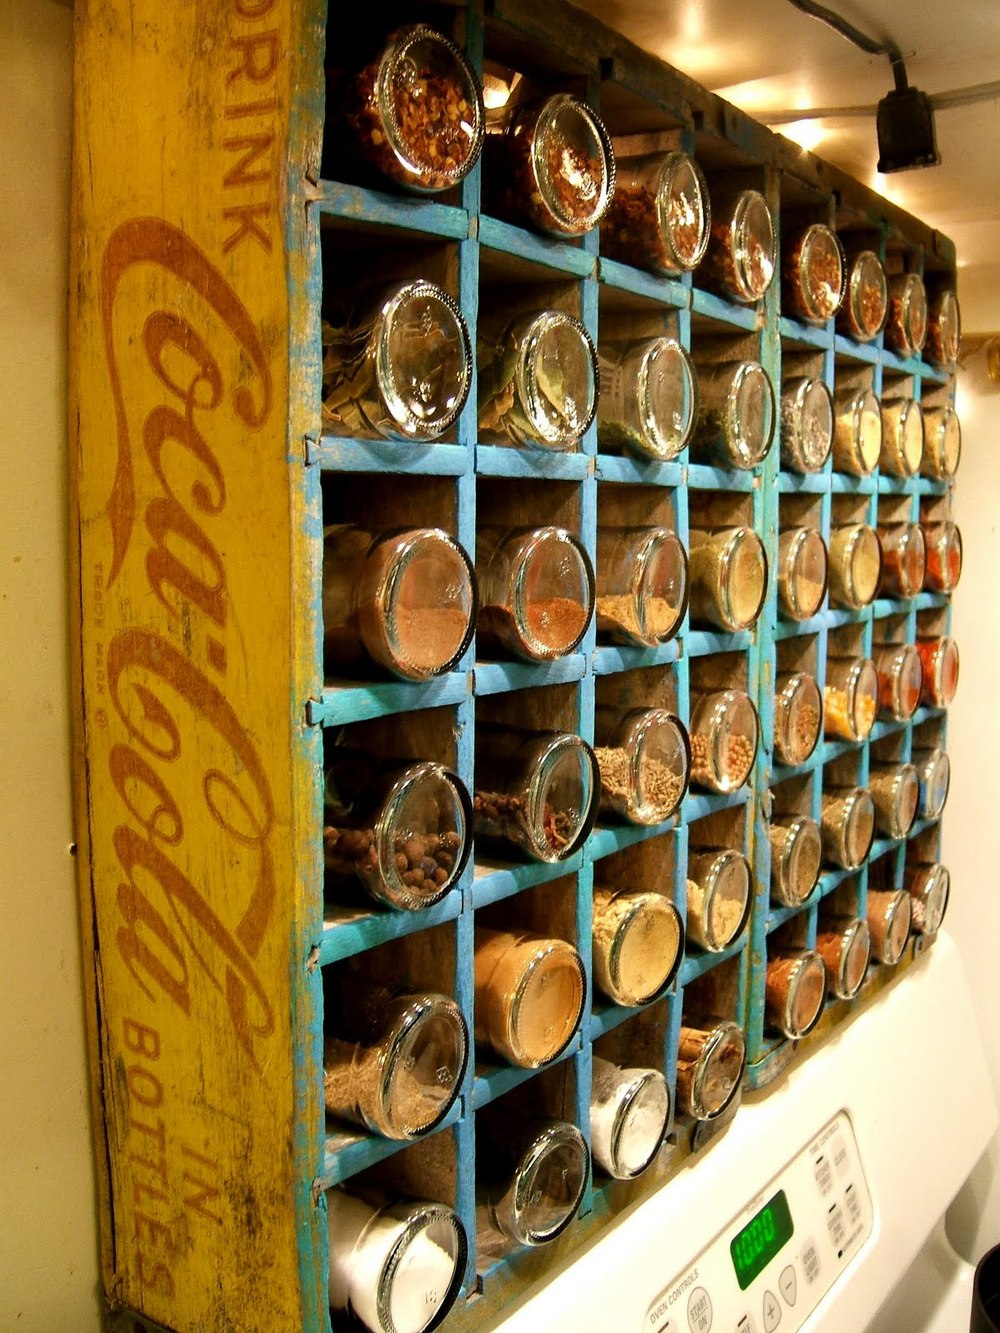 Coke Bottle Spice Rack from Nine Red